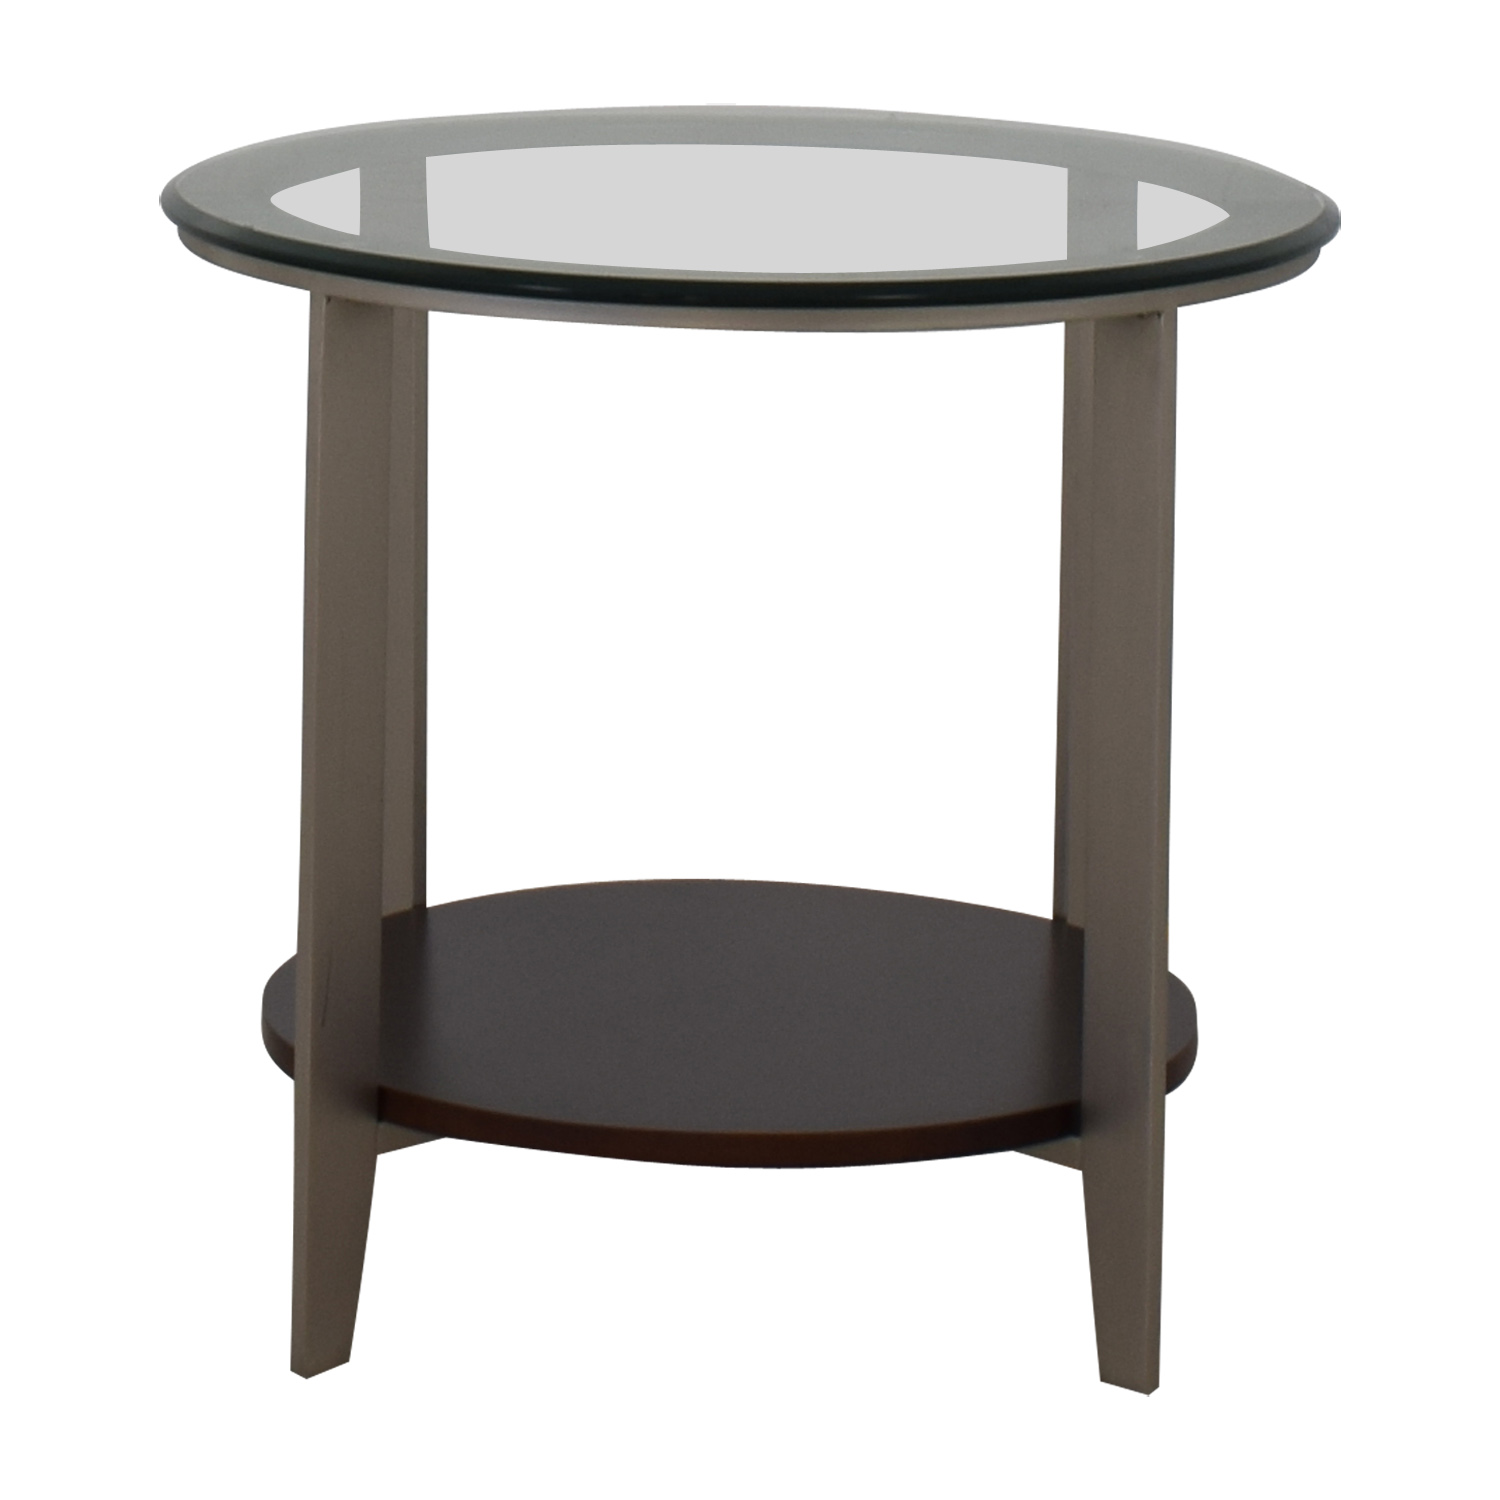 Ethan Allen Elements Glass Top End Table sale